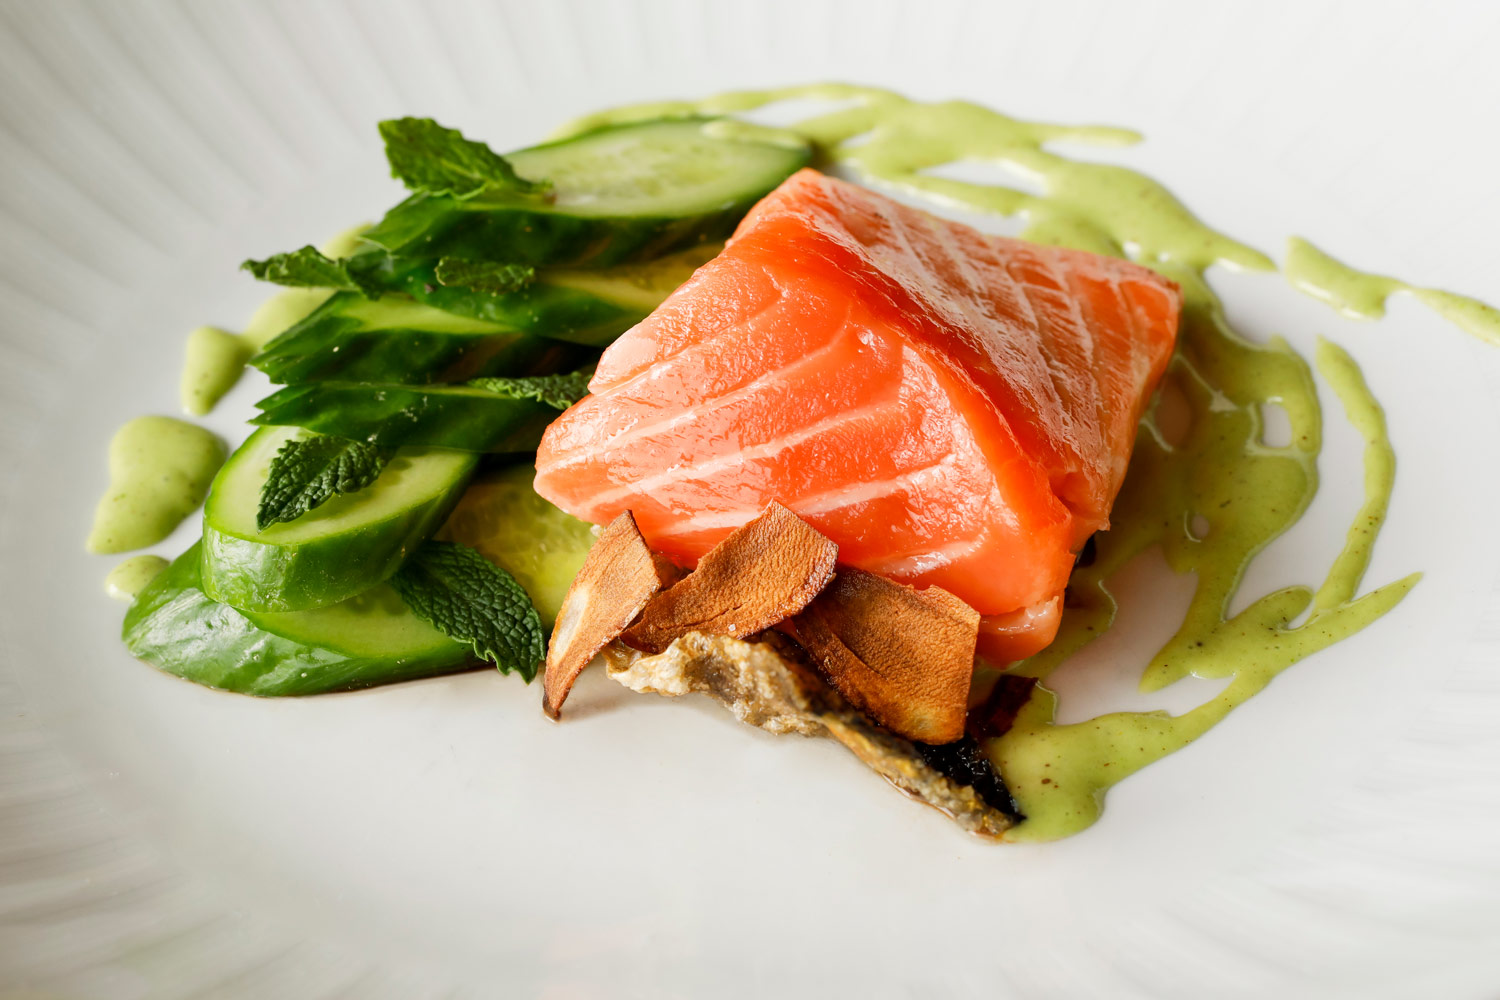 harvest-restaurant-madison-wisconsin-capitol-poached-salmon-food-photography-ruthie-hauge.jpg